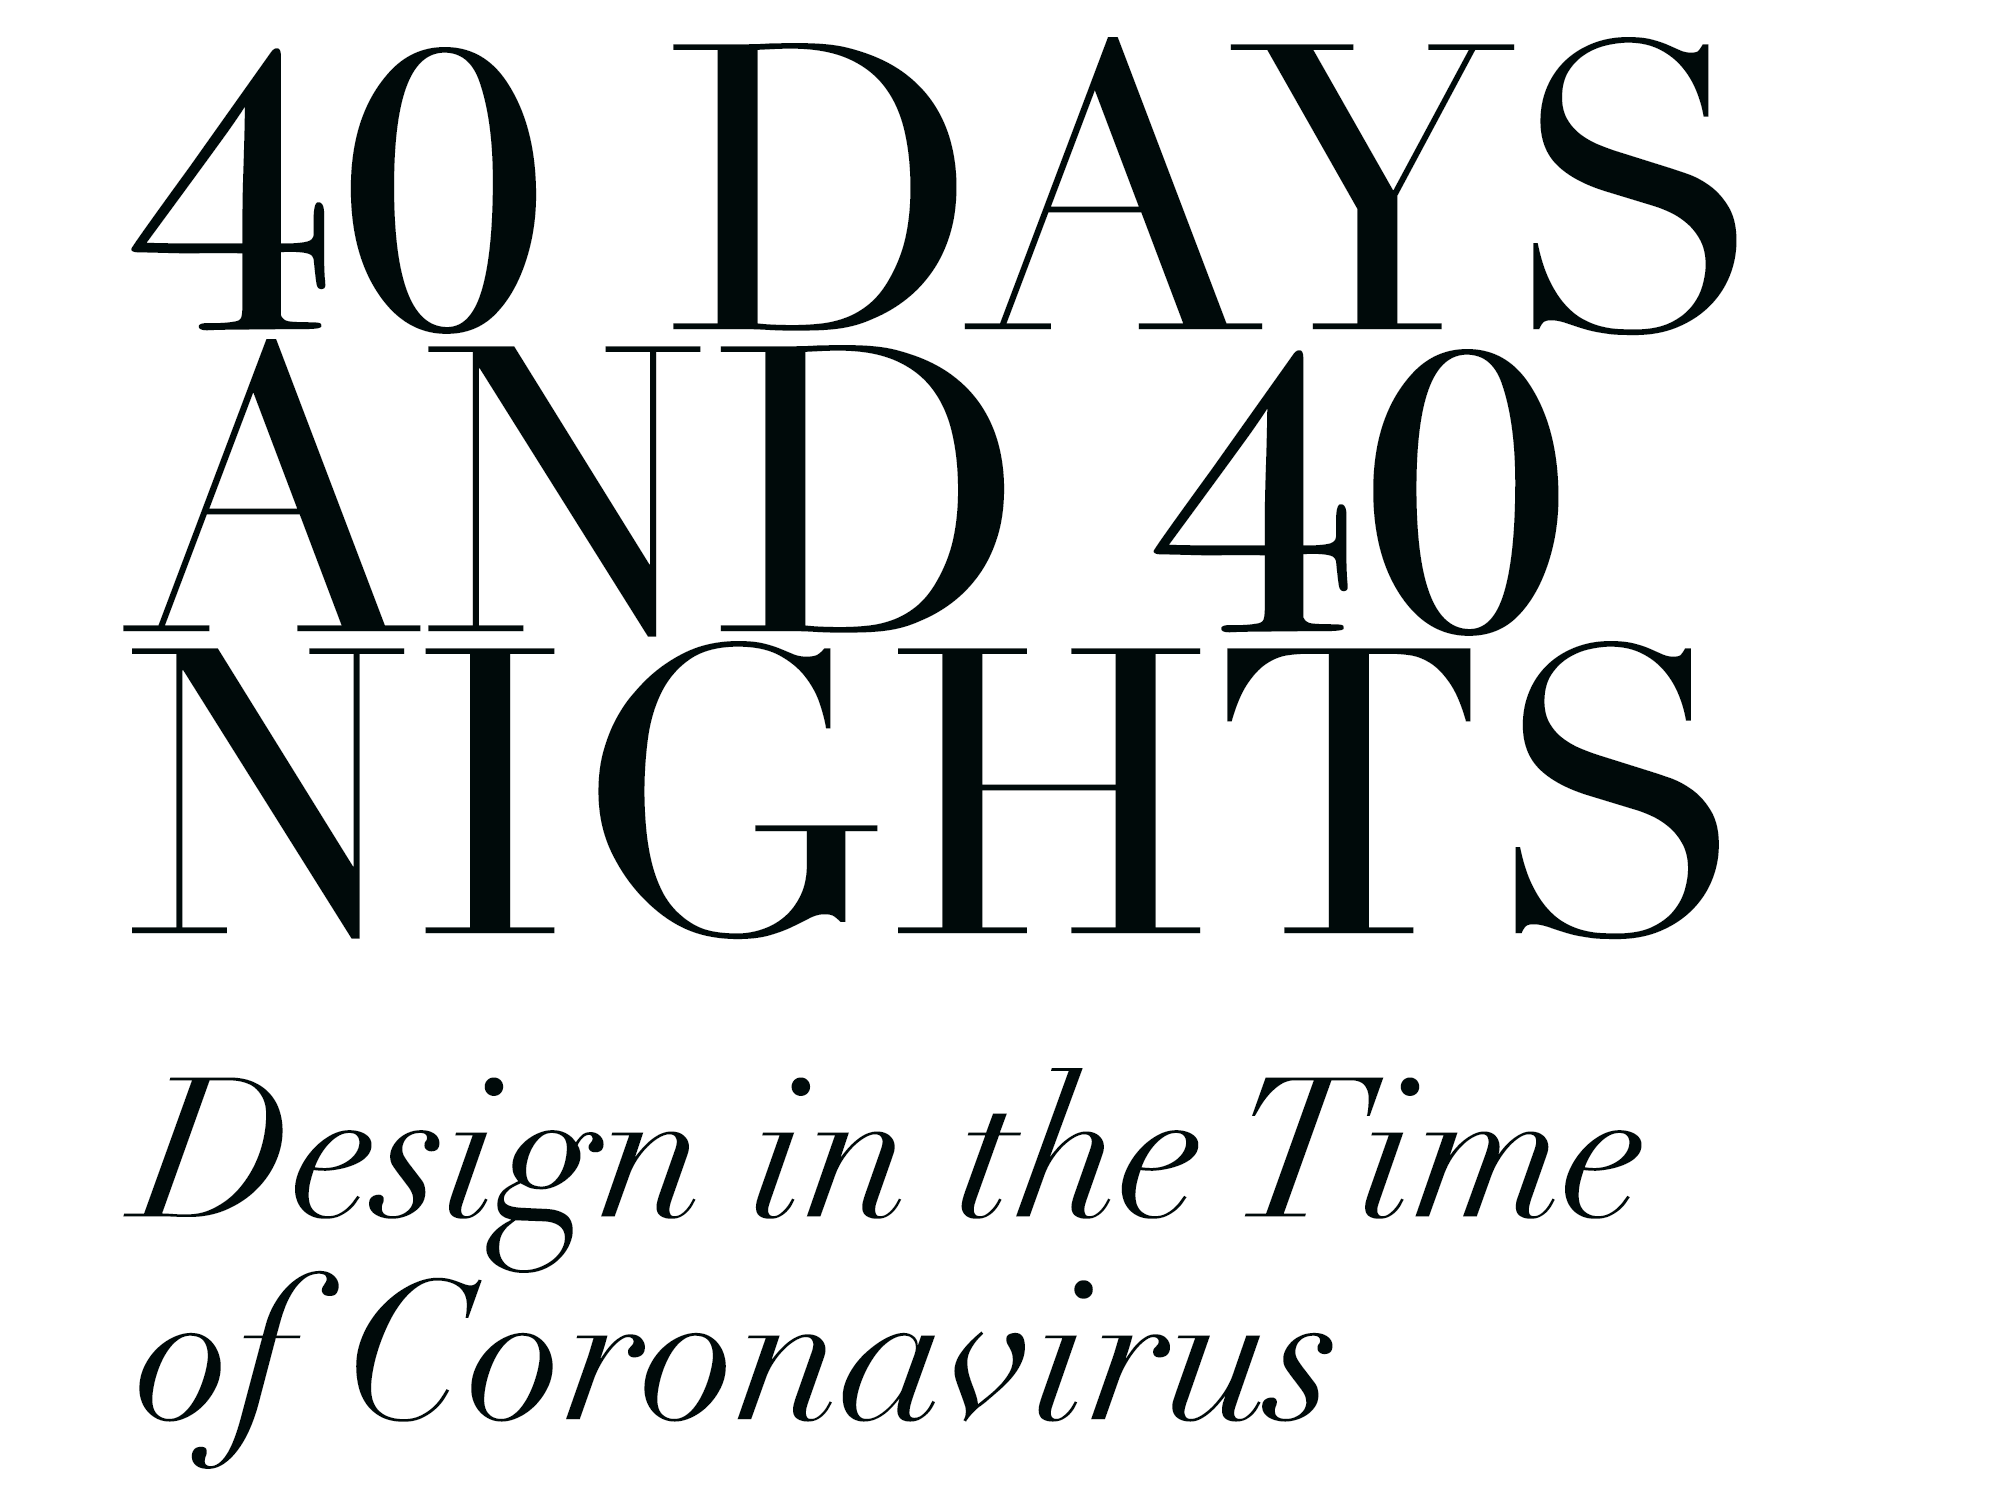 40 Days and 40 Nights Design in the Time of Coronavirus